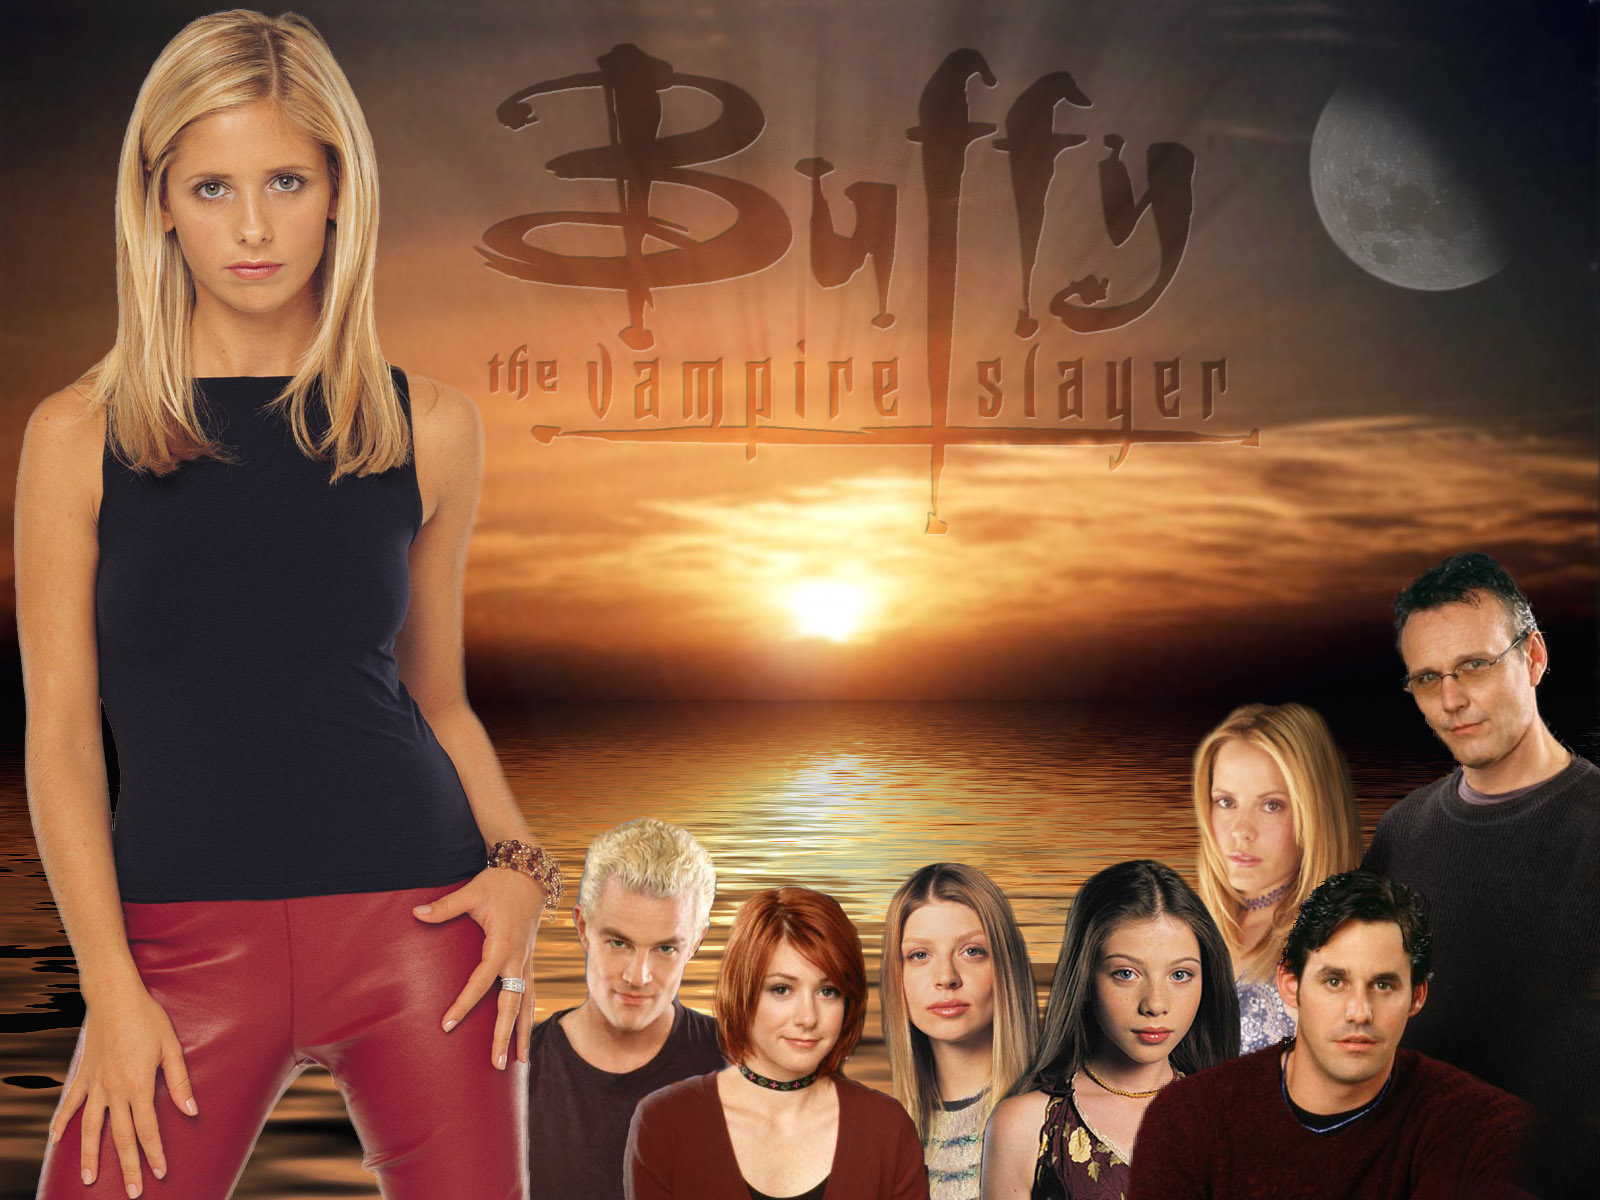 http://3.bp.blogspot.com/_7tbPMmrnSJU/TN4NYgZpCfI/AAAAAAAAADA/kUMMNCbwM4Q/s1600/buffy+-+the+vampire+slayer+-+wallpaper.jpeg